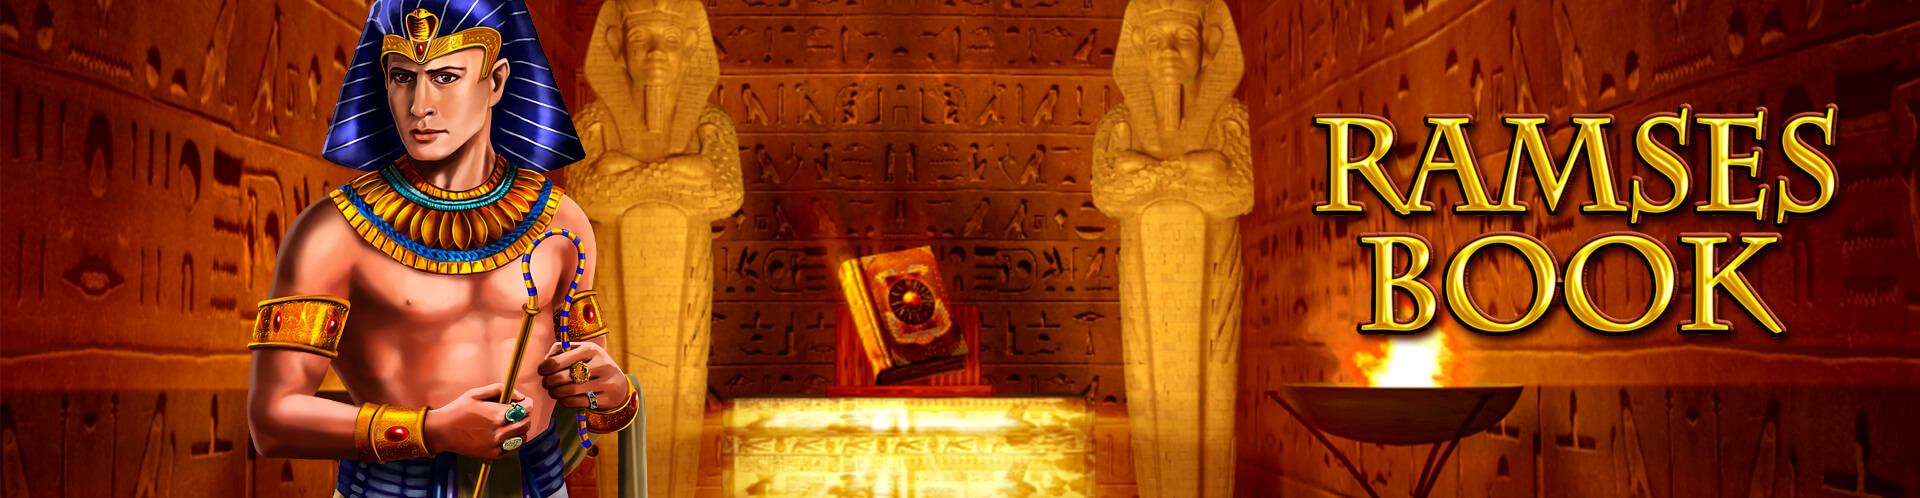 Ramses Book Respins of Amun-Re